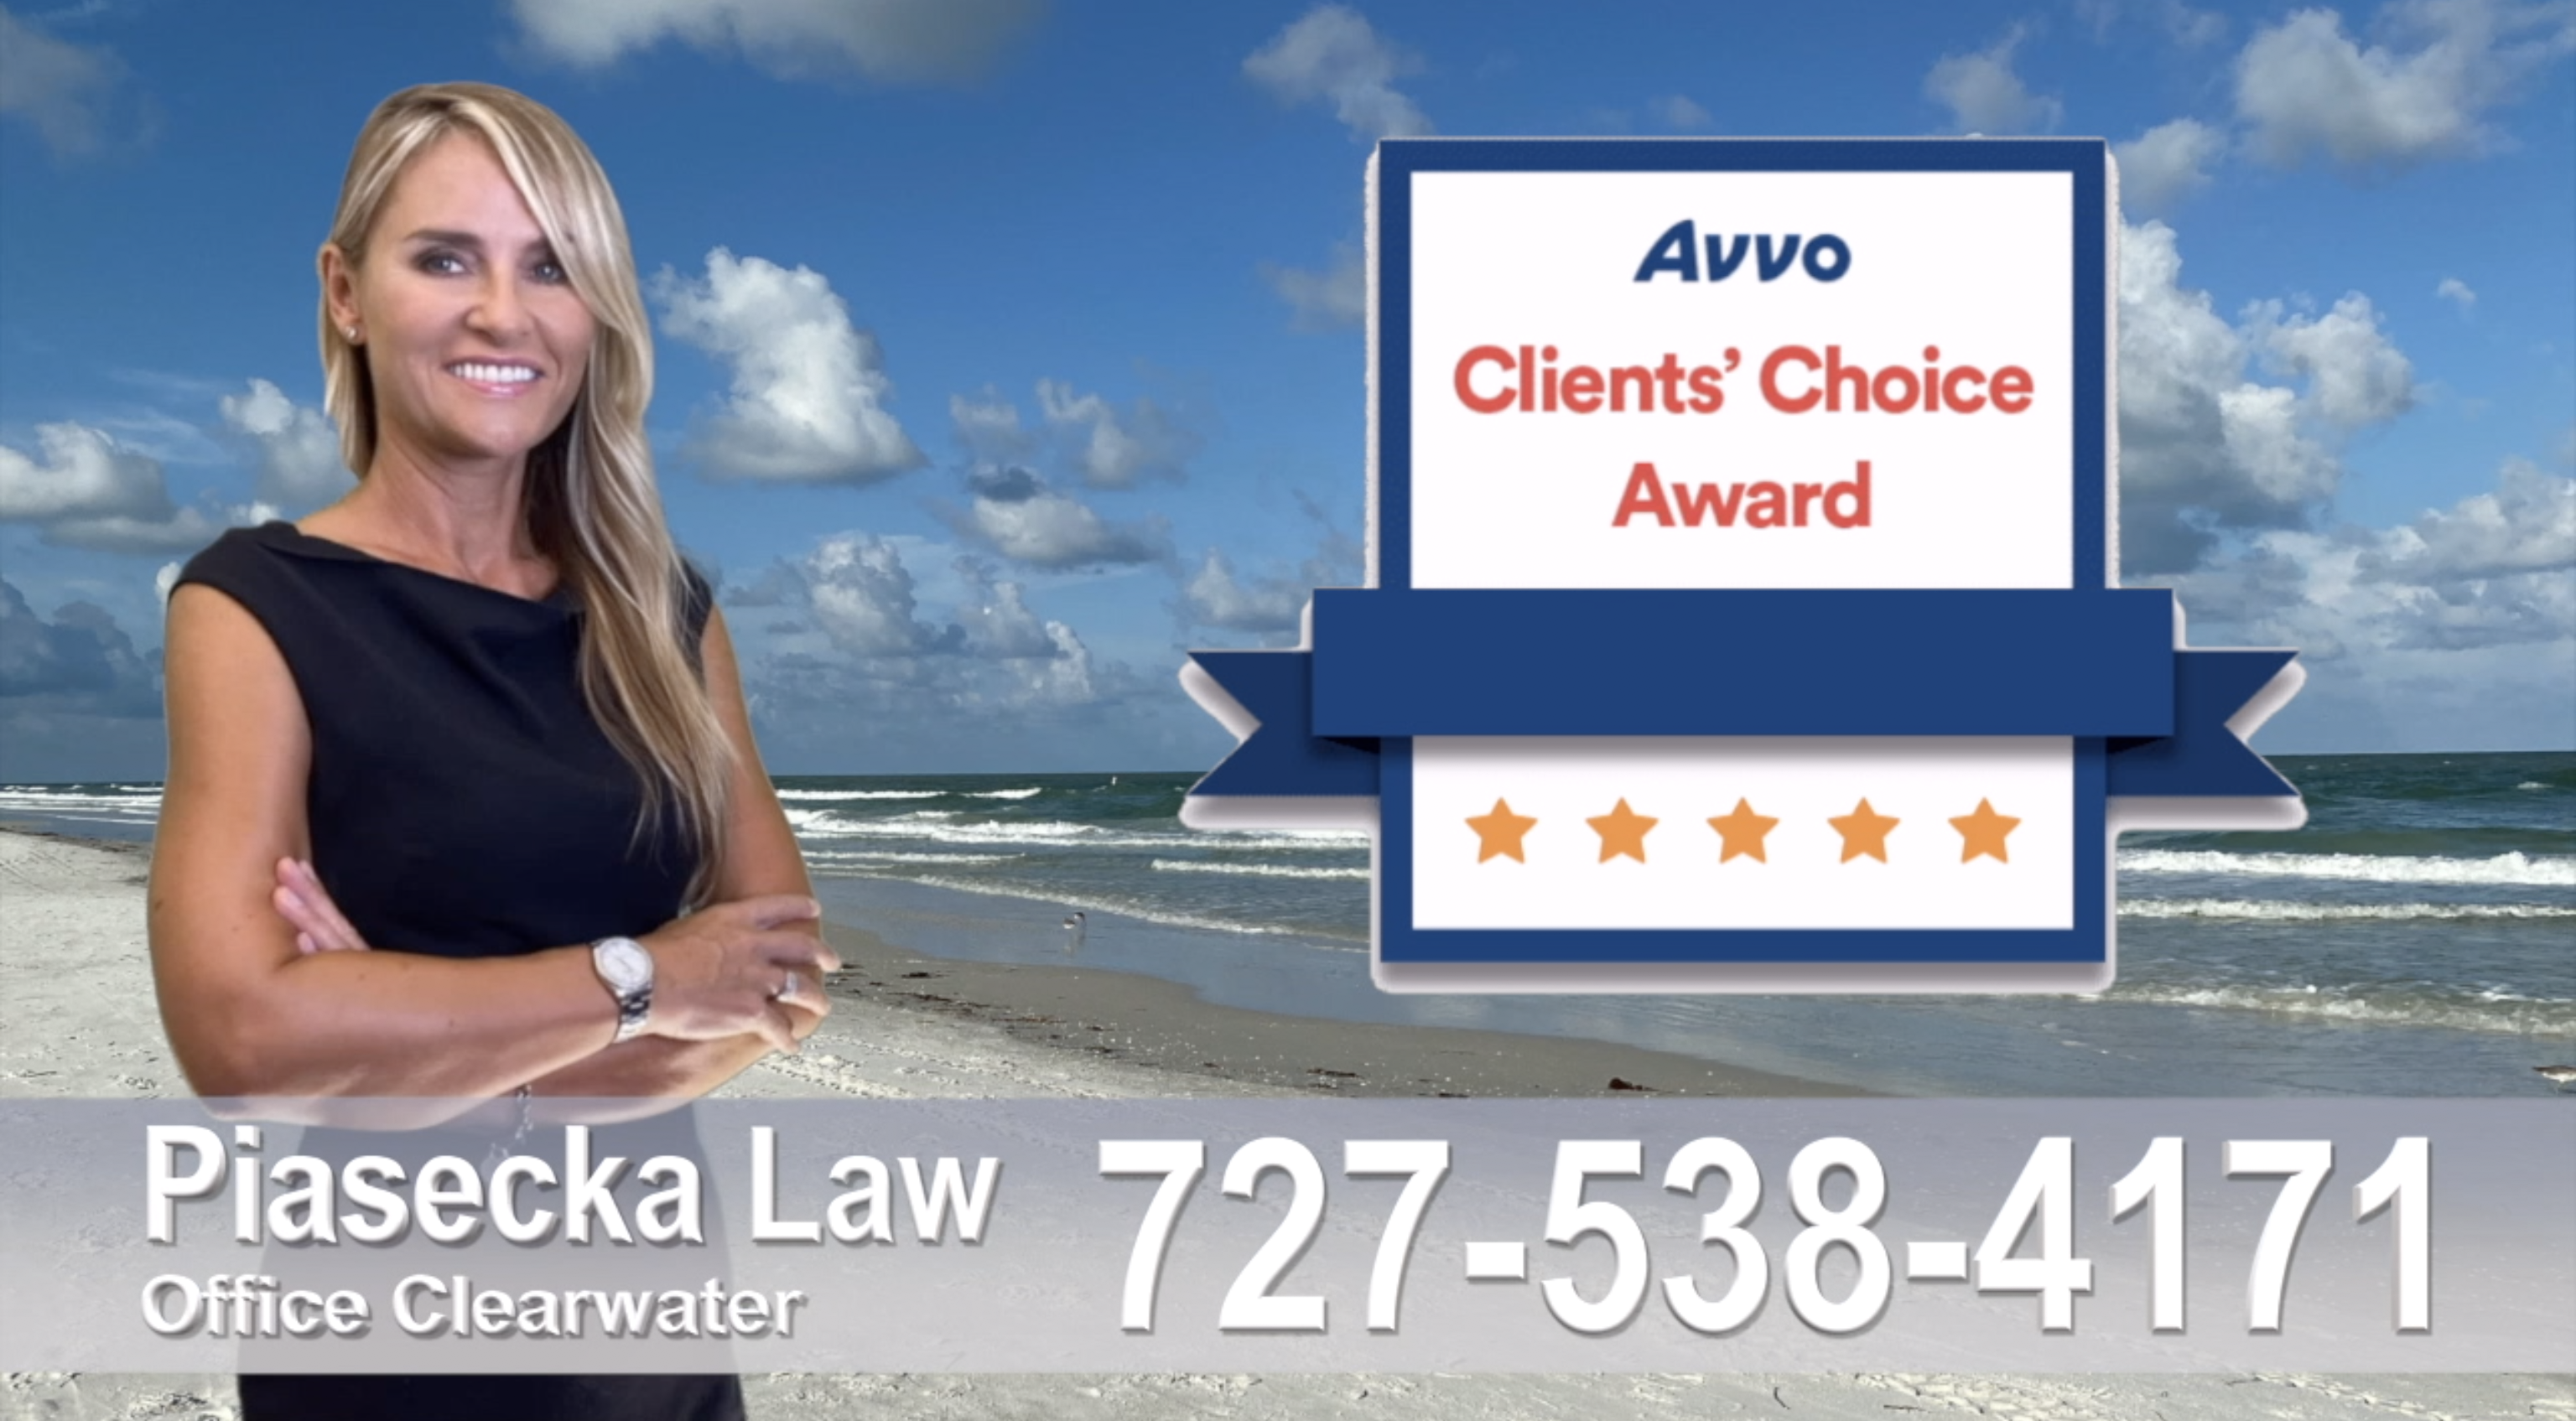 Polish Immigration Attorney lawyer-clients-reviews-award-avvo-2